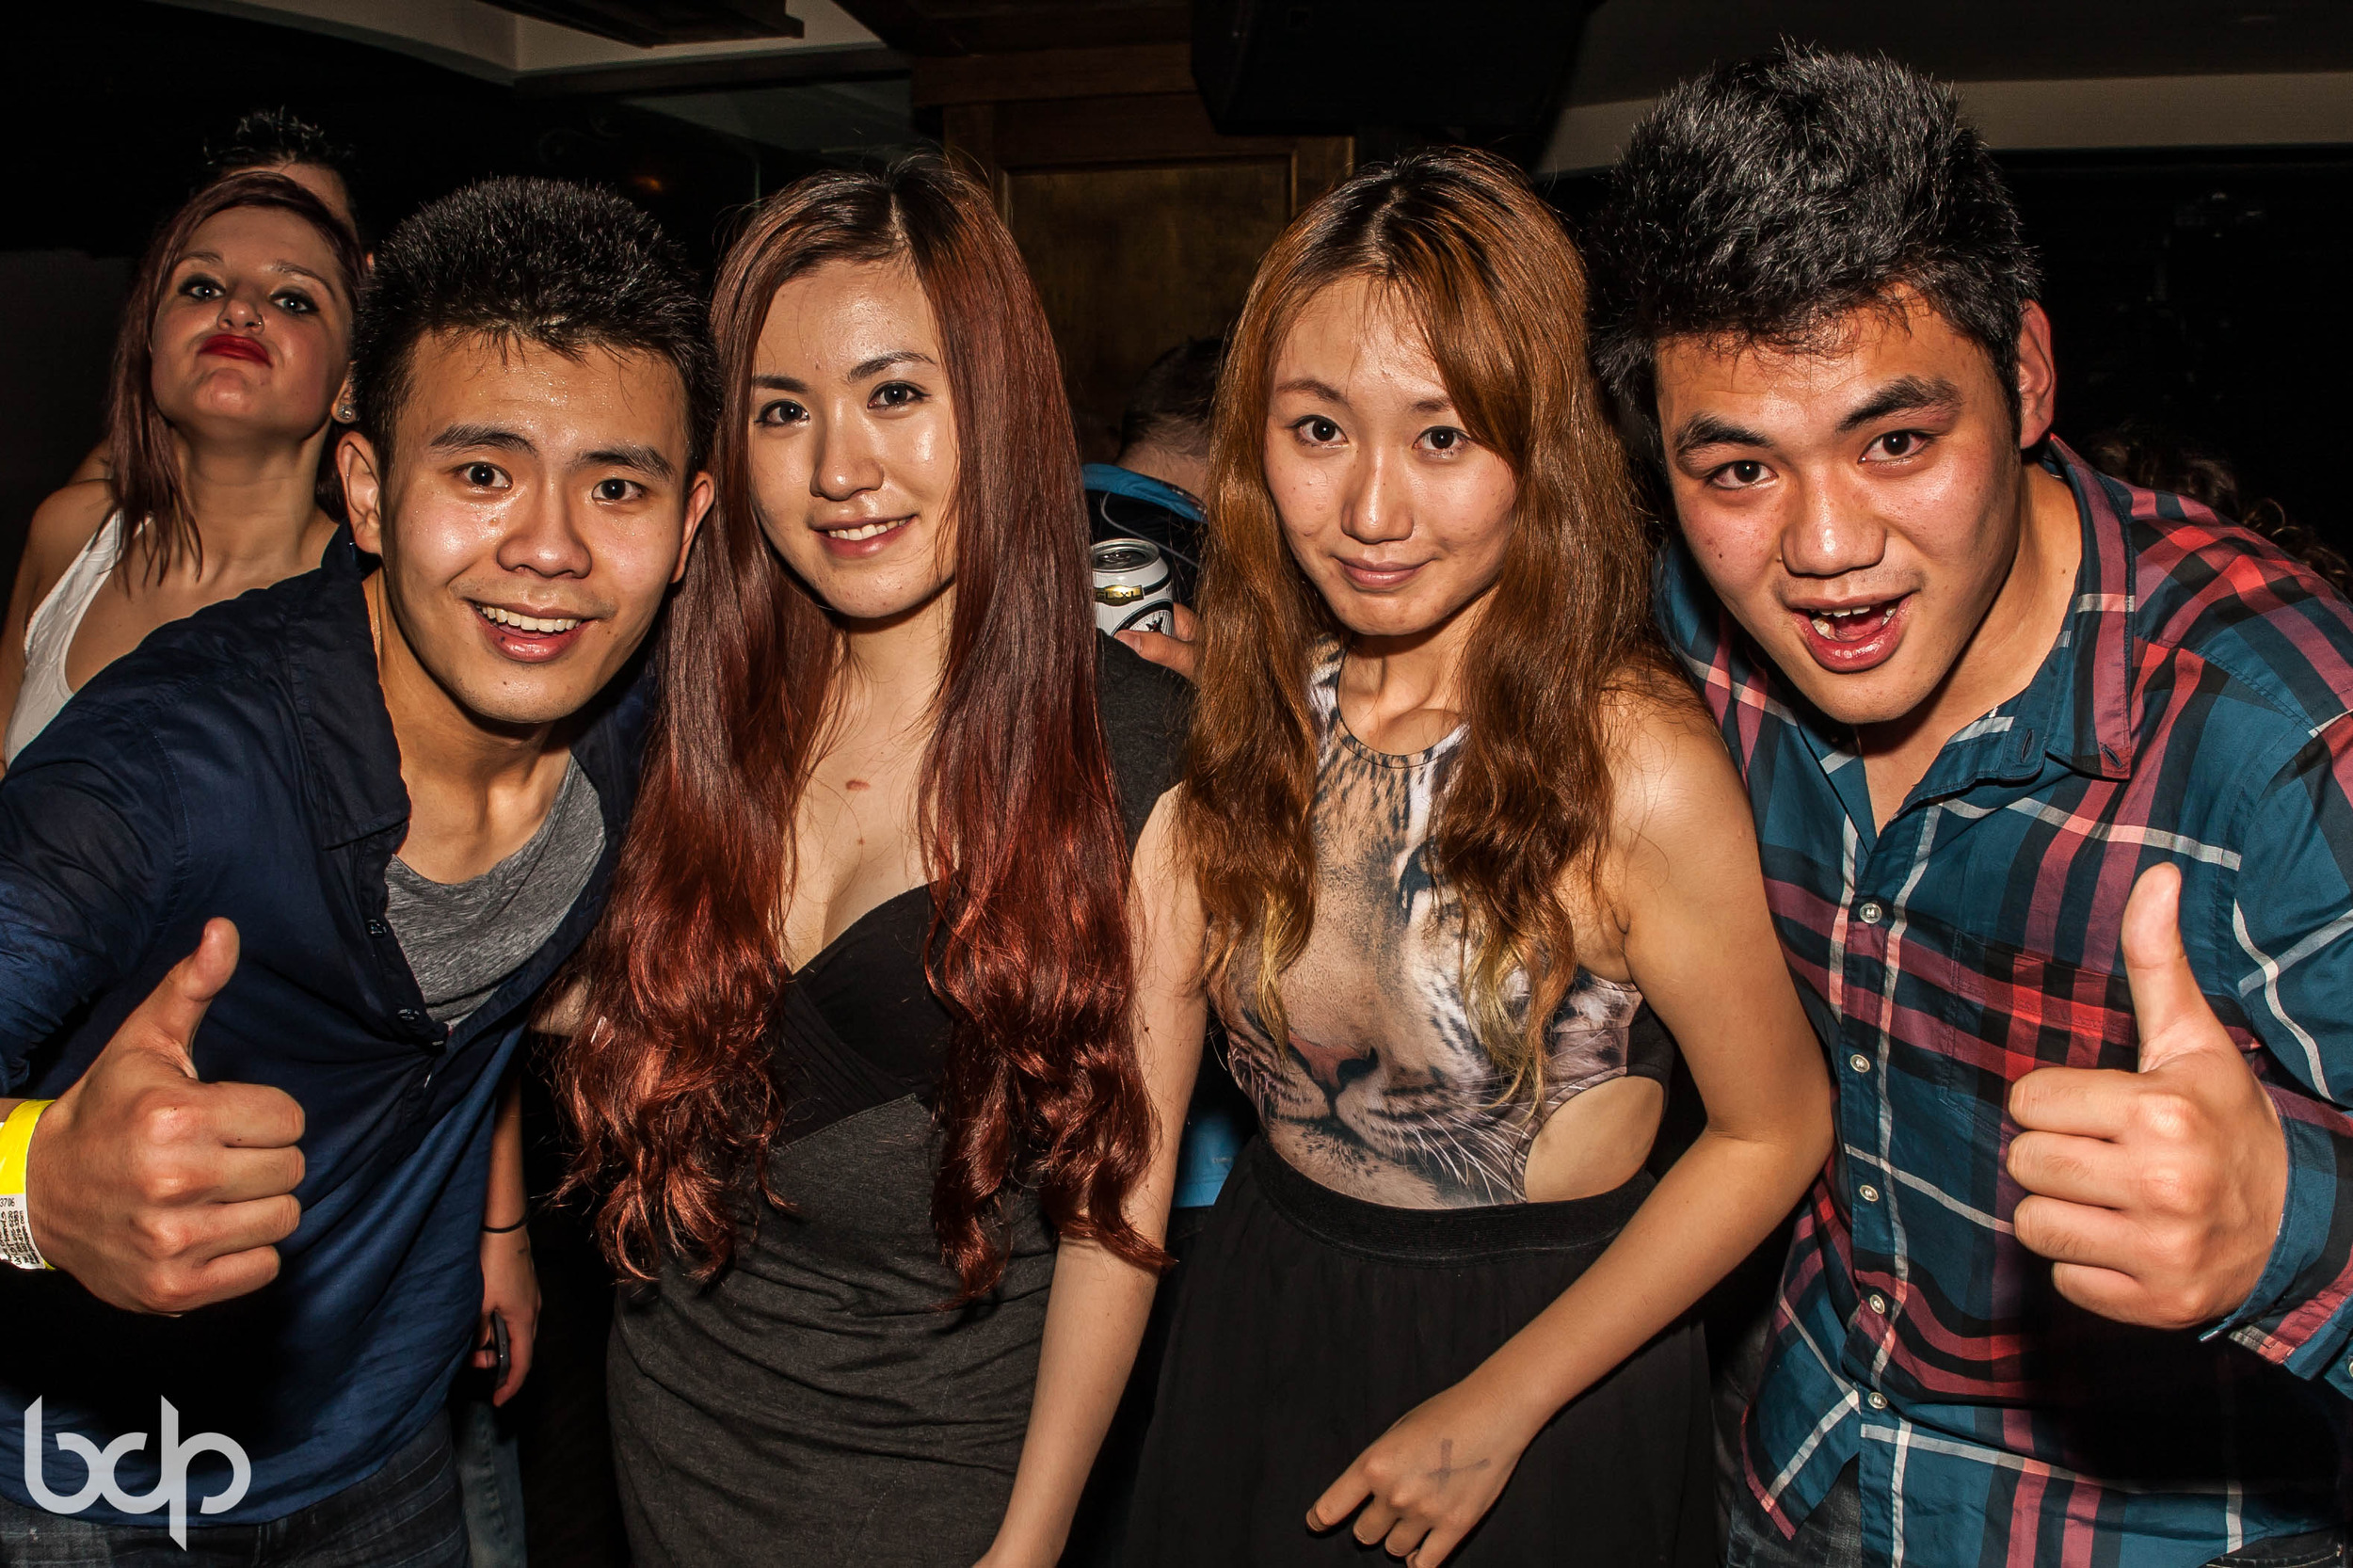 Aokify America Tour at Epic at Epic 110913 BDP-126.jpg